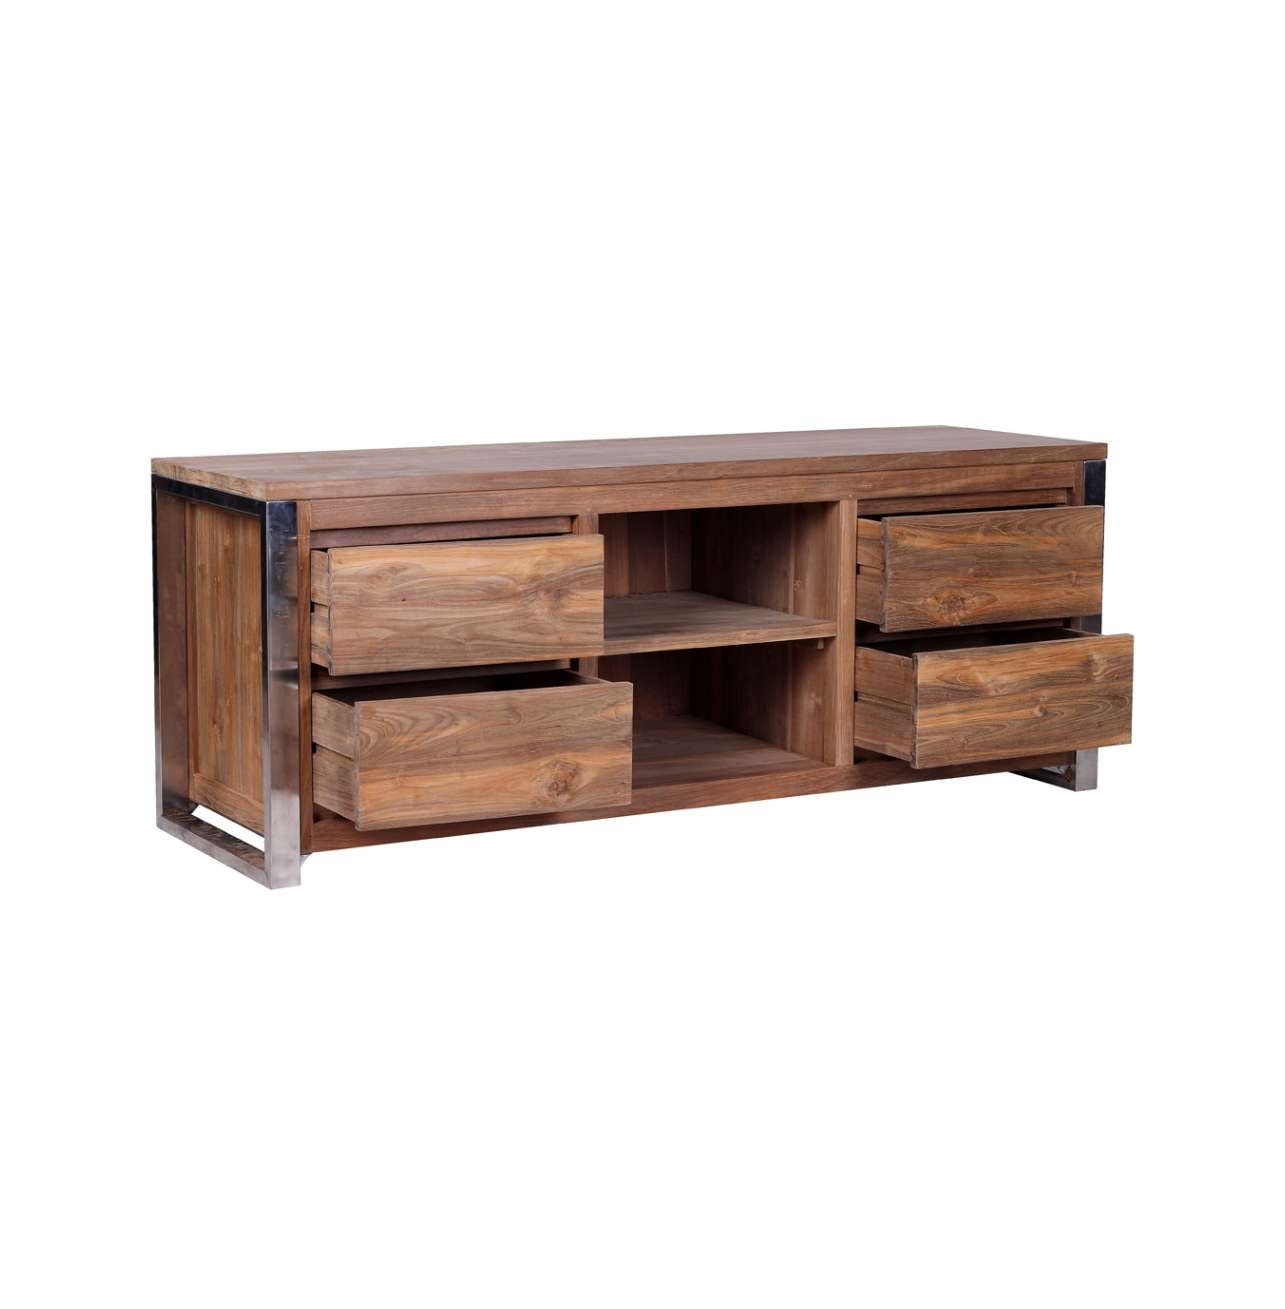 Rarem Reclaimed Wood Tv Stand – Reclaimed Teak And Stainless Steel Intended For Reclaimed Wood And Metal Tv Stands (View 5 of 20)